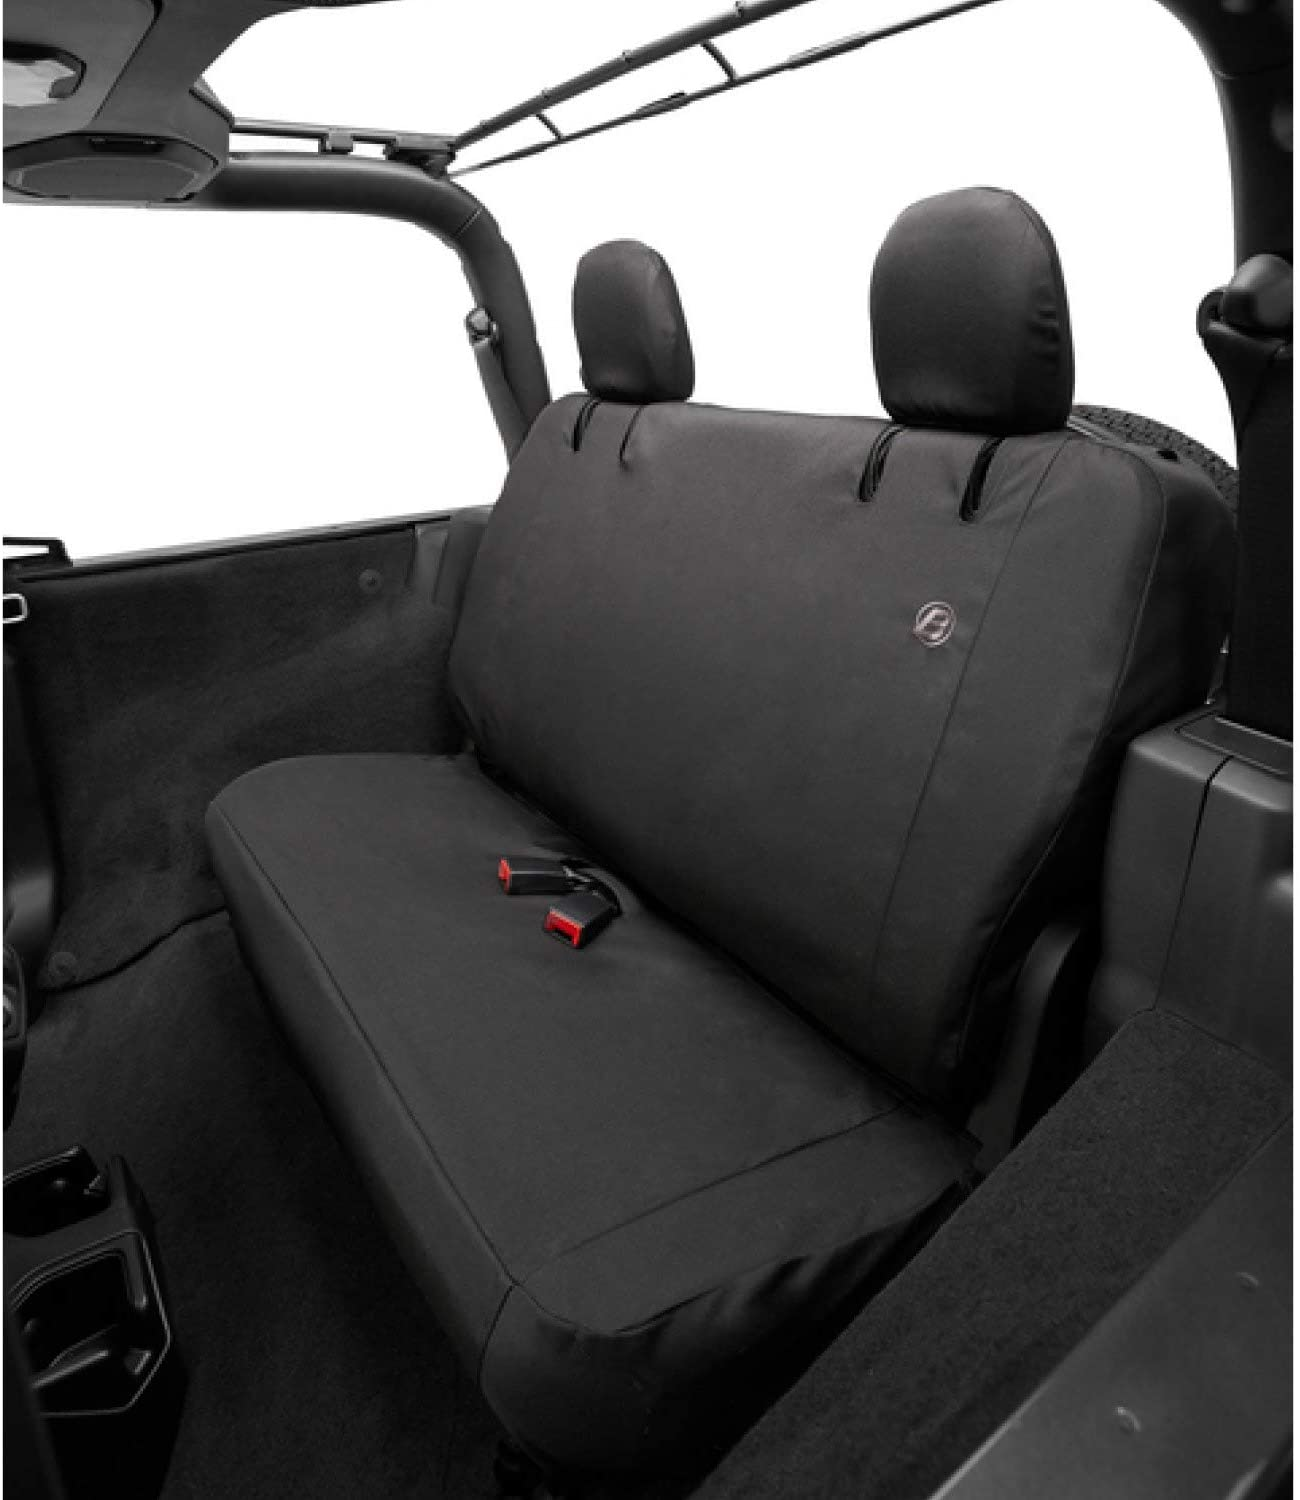 Bestop 2929435 Black Diamond Seat Covers, Rear- Jeep 2018-Current Wrangler Unlimited Without Armrest